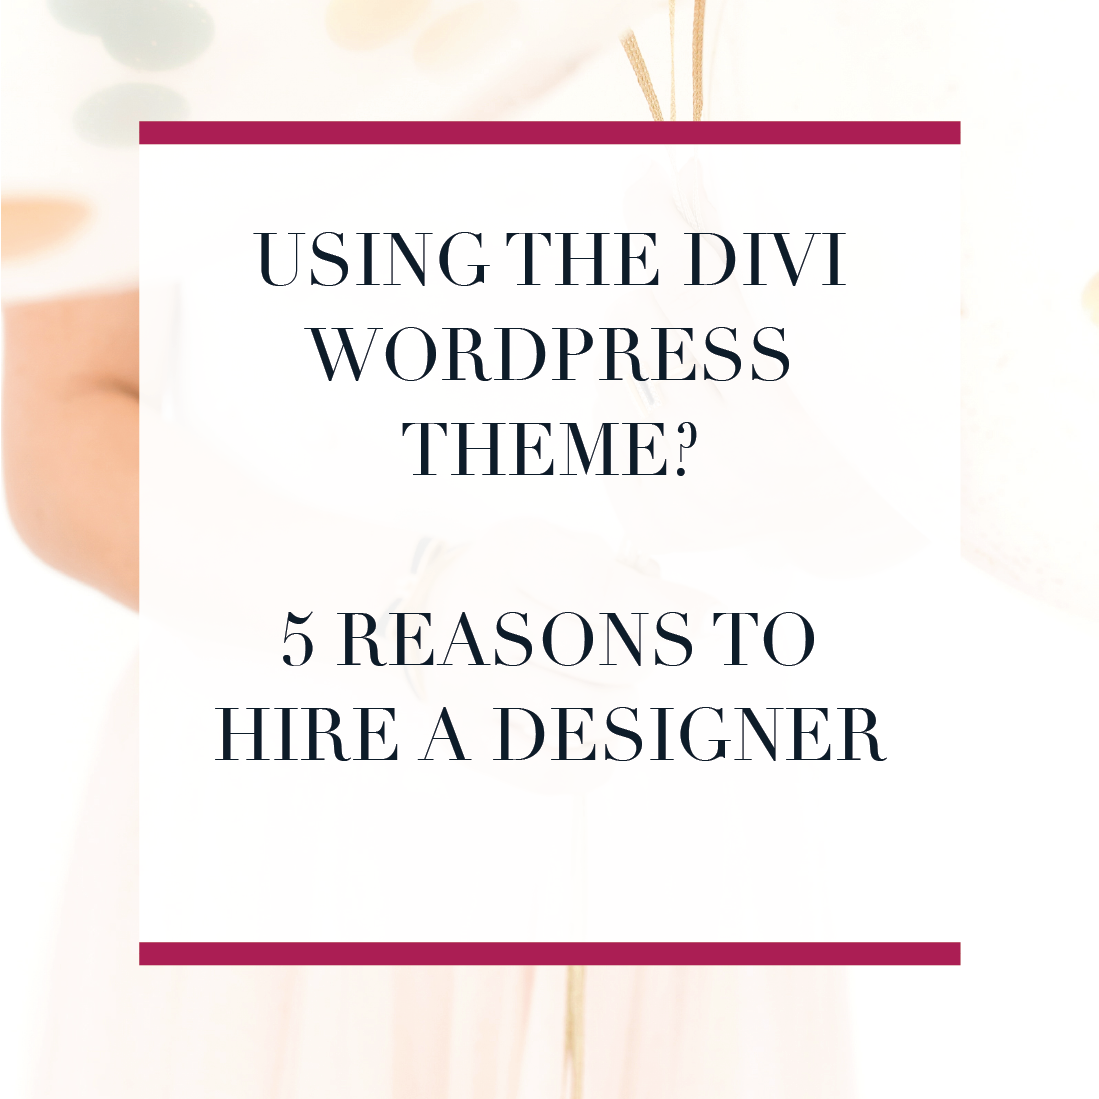 Using the Divi WordPress theme? 5 reasons to hire a designer